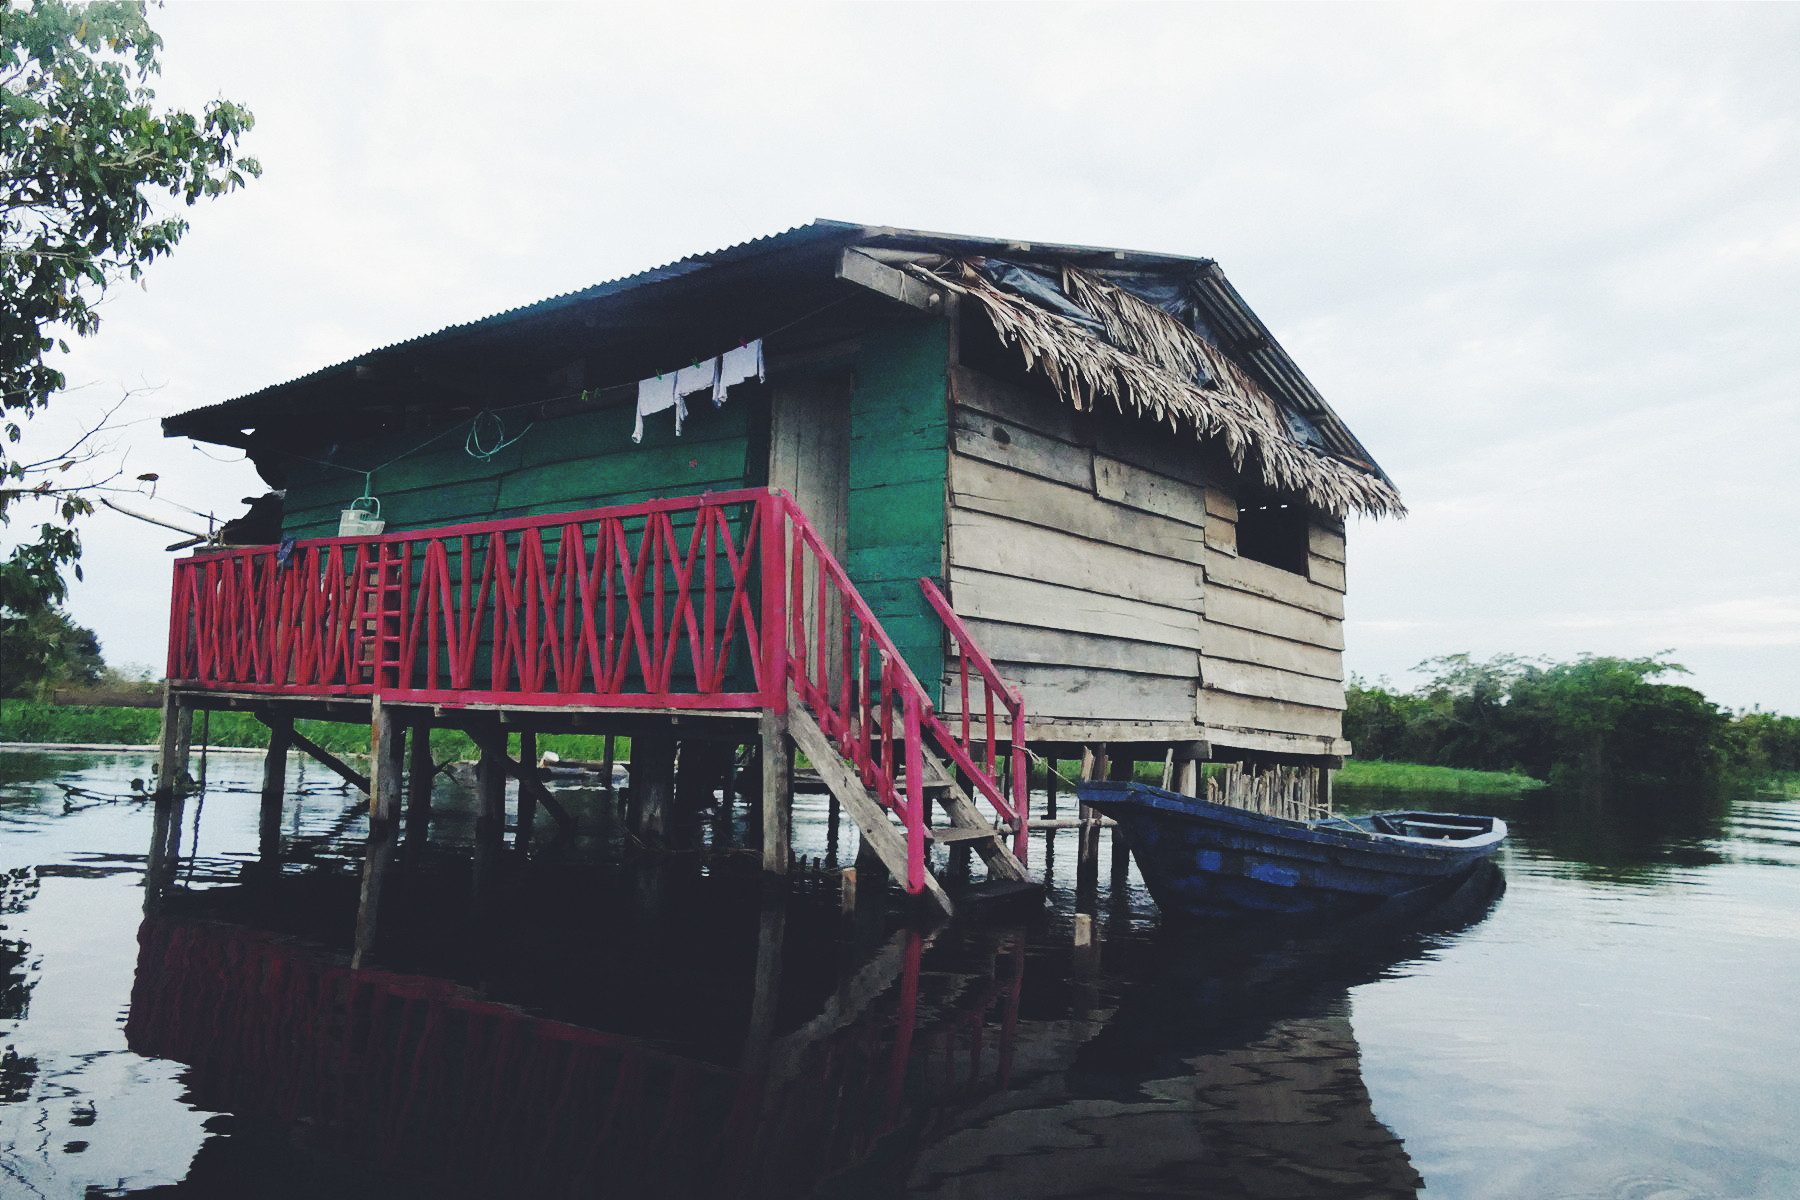 An outlying house in a flooded area near Iquitos, Peru. Noah Strycker